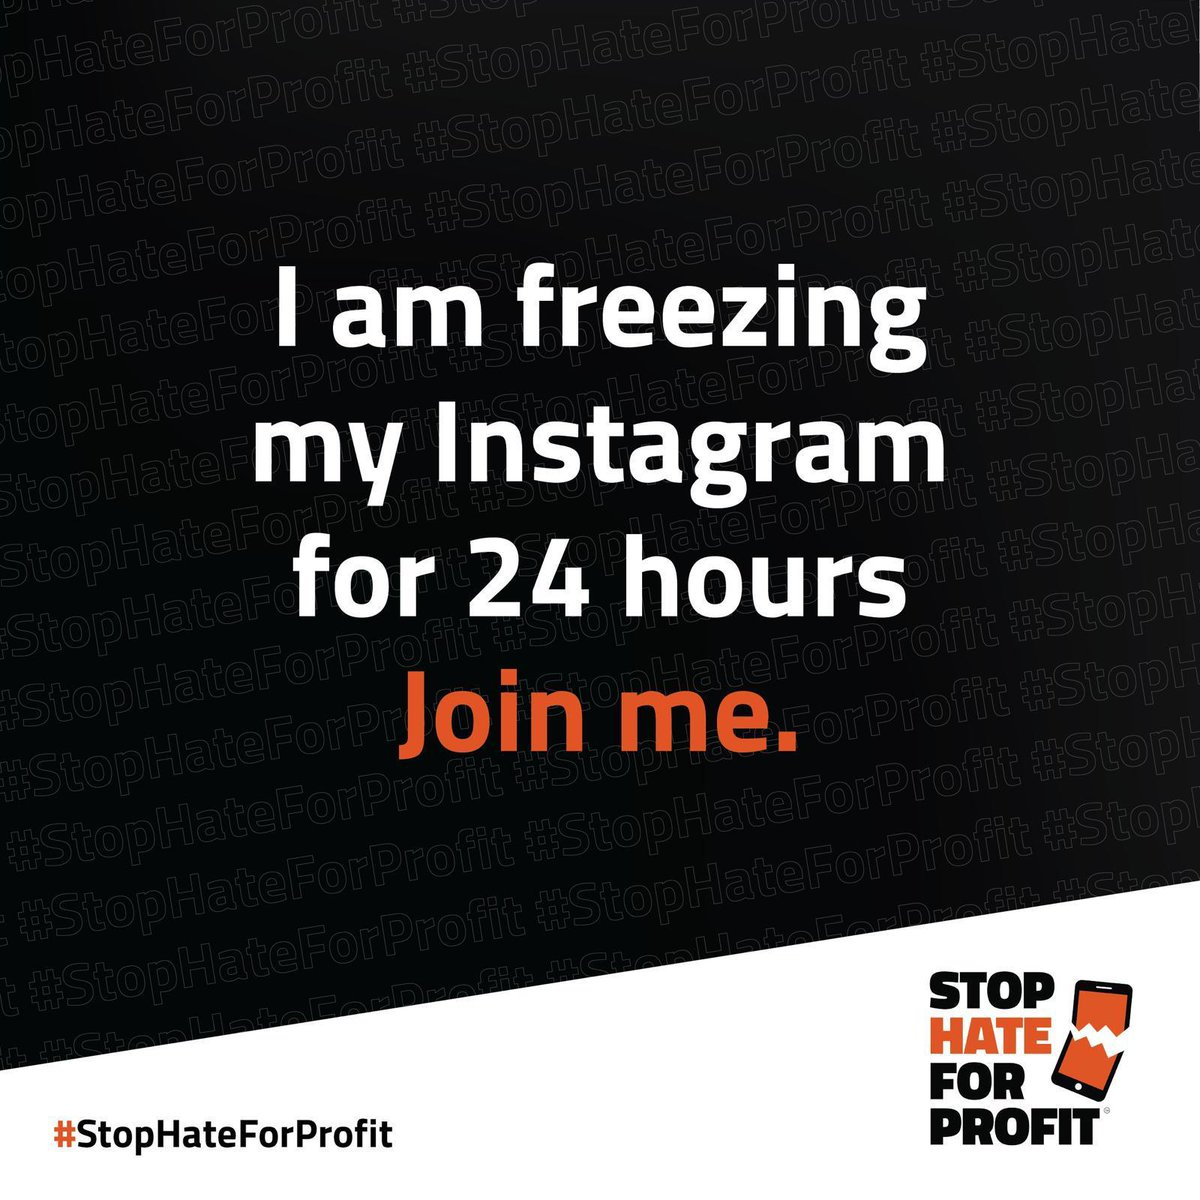 It's time to stop hate, bigotry, and disinformation. Freeze Instagram today with me. #StopHateForProfit